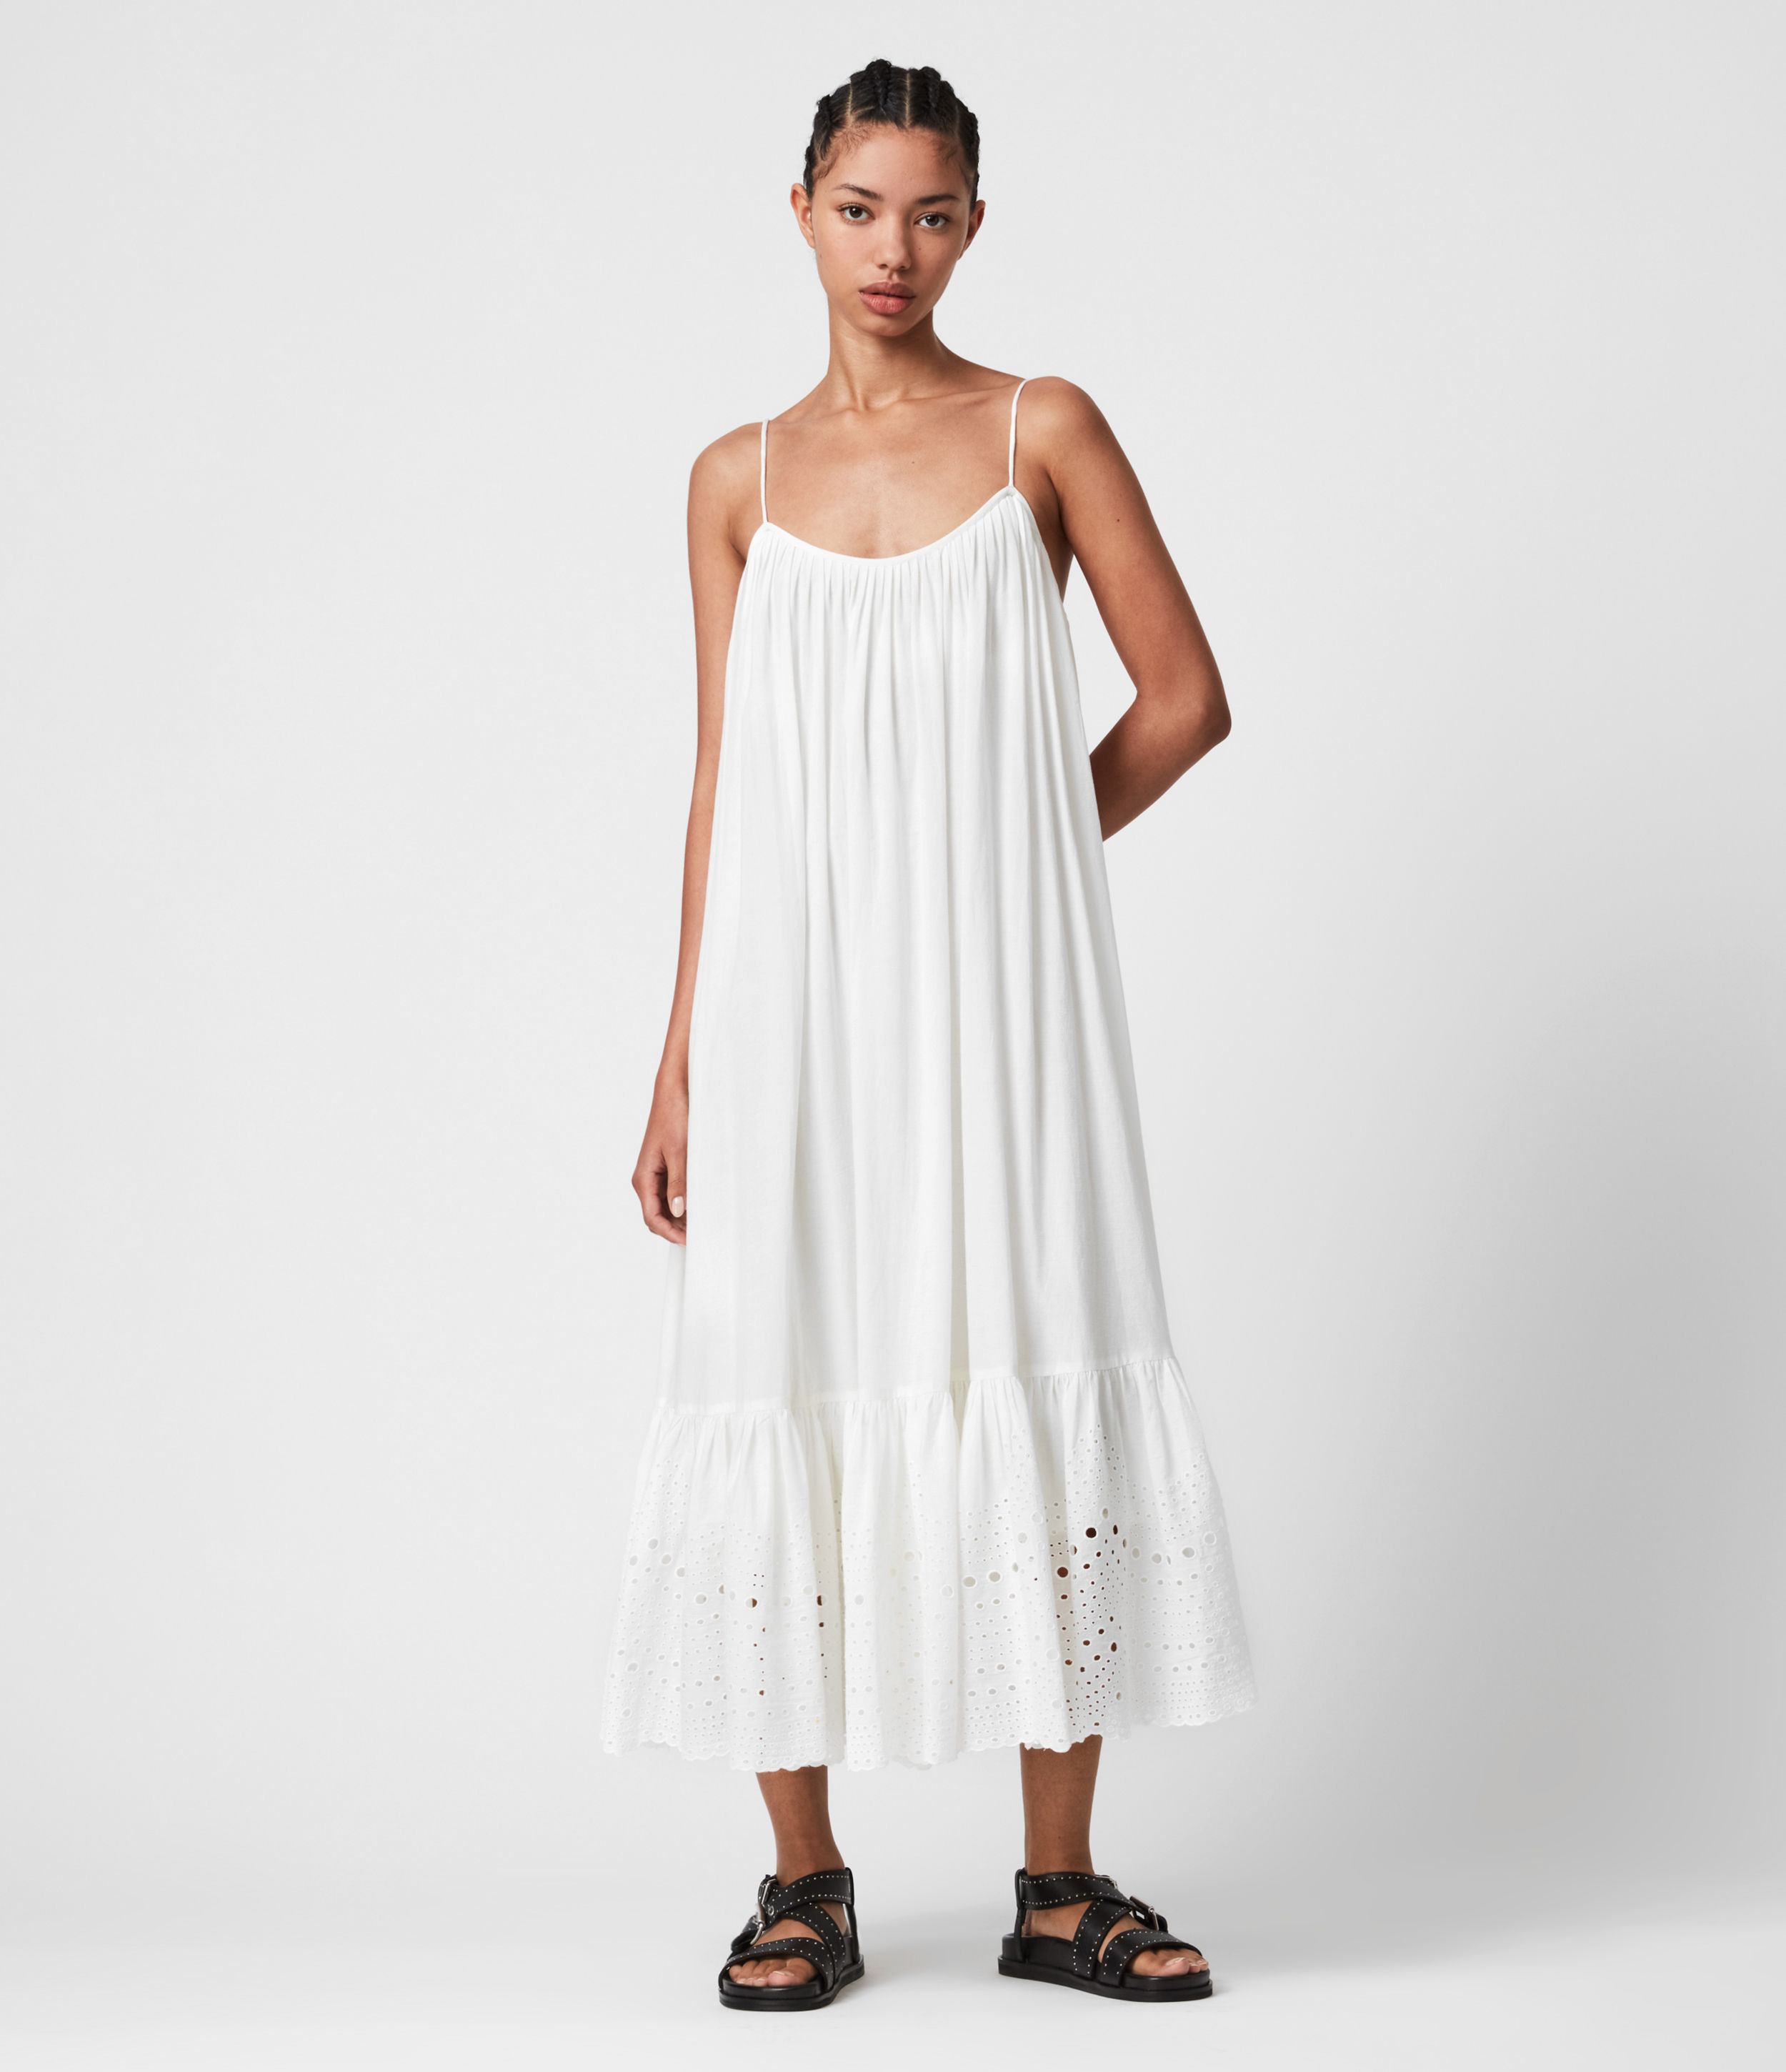 AllSaints Paola Cotton Dress